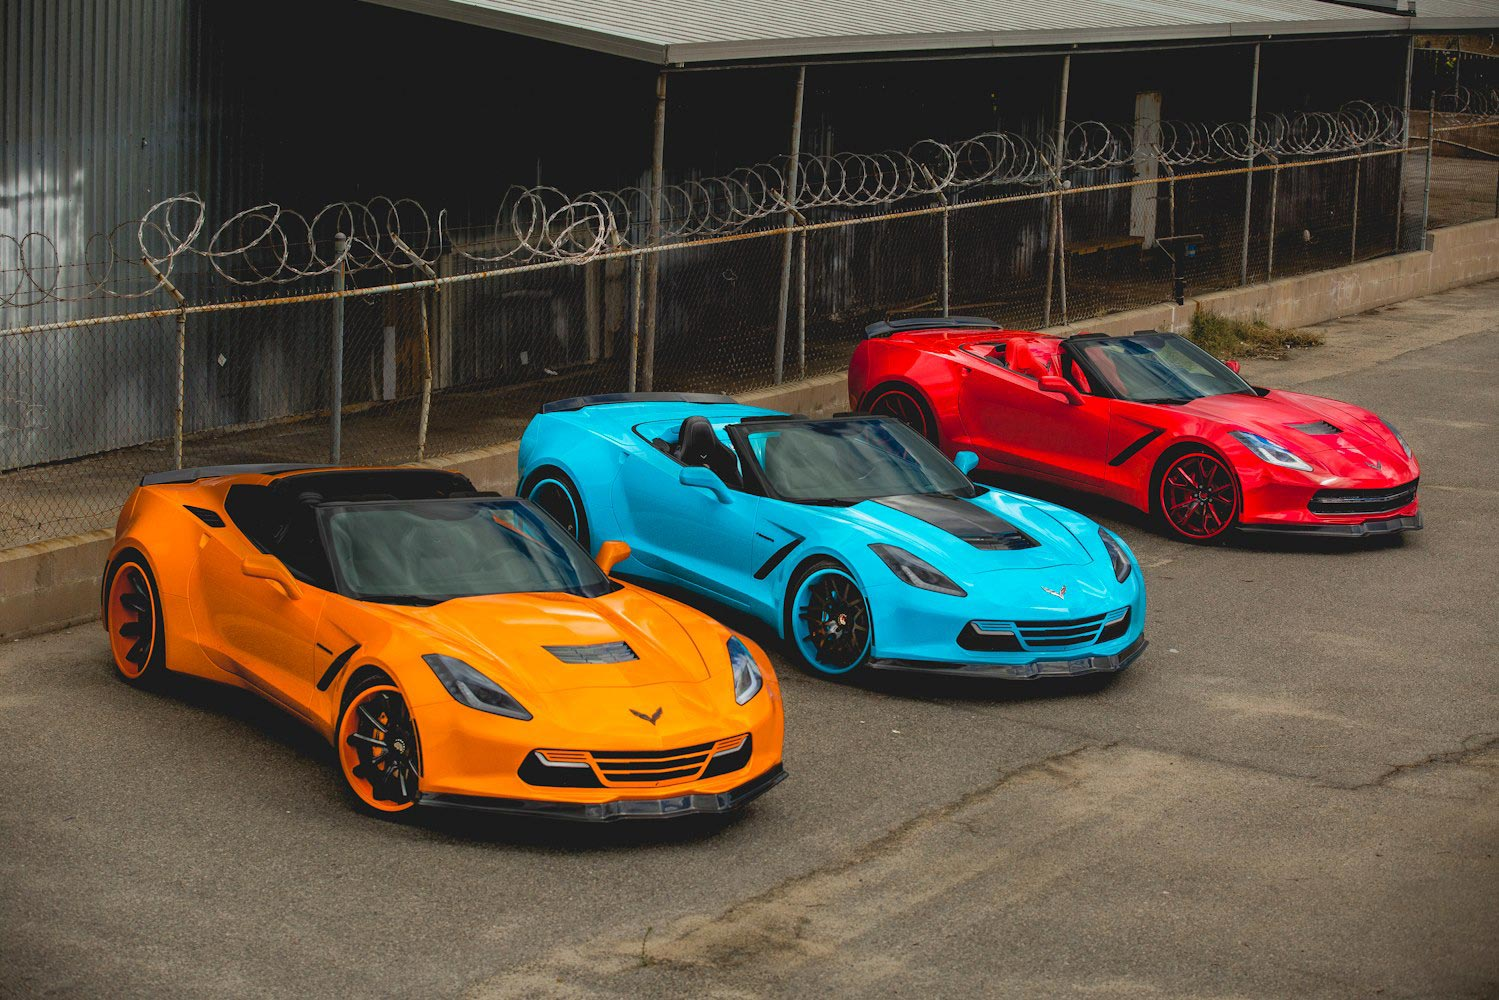 2014 Corvette Stingray Orange Forgiato widebody c7 corvetteCorvette Stingray 2014 Orange